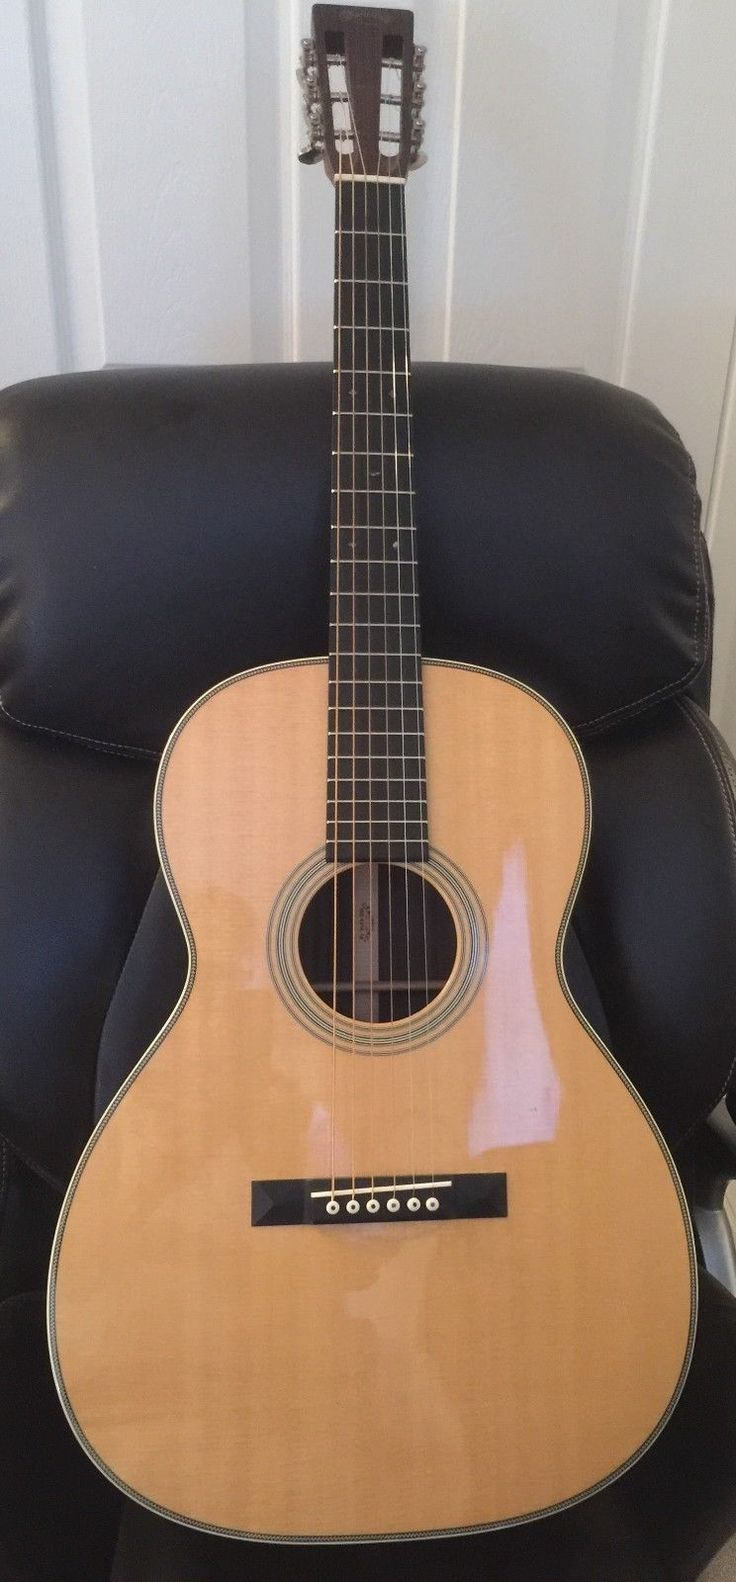 Guitar 2016 Martin 000 28 VS Acoustic With Hard Shell Case Please Retweet